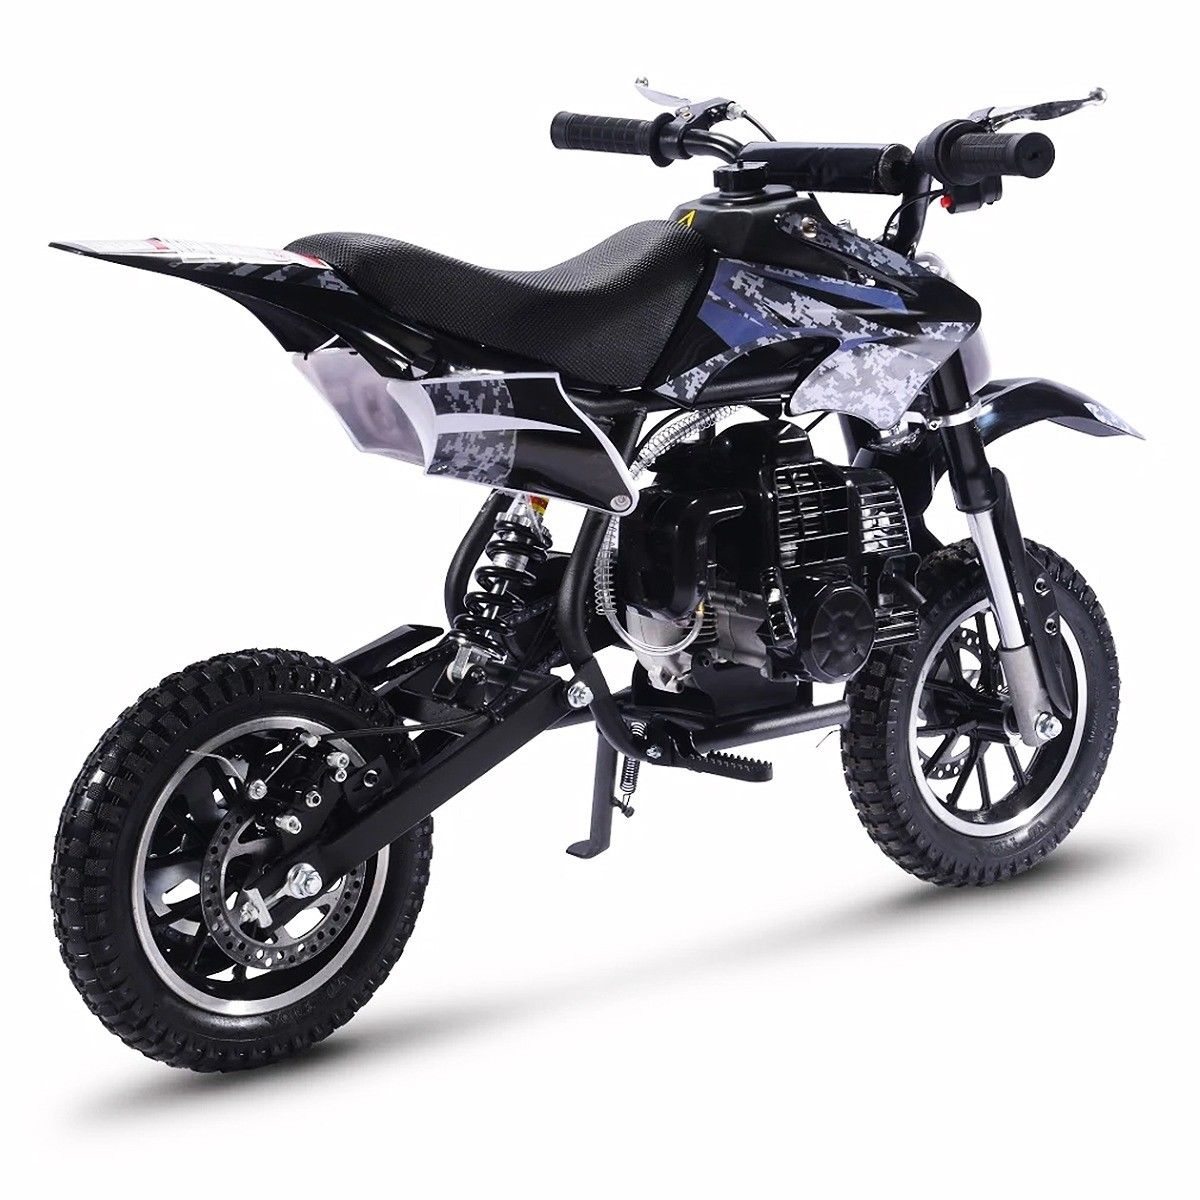 49cc-2-Stroke-Gas-Motorized-Mini-Dirt-devil-scooter-Bike-Pocket-Bike-Pit thumbnail 13